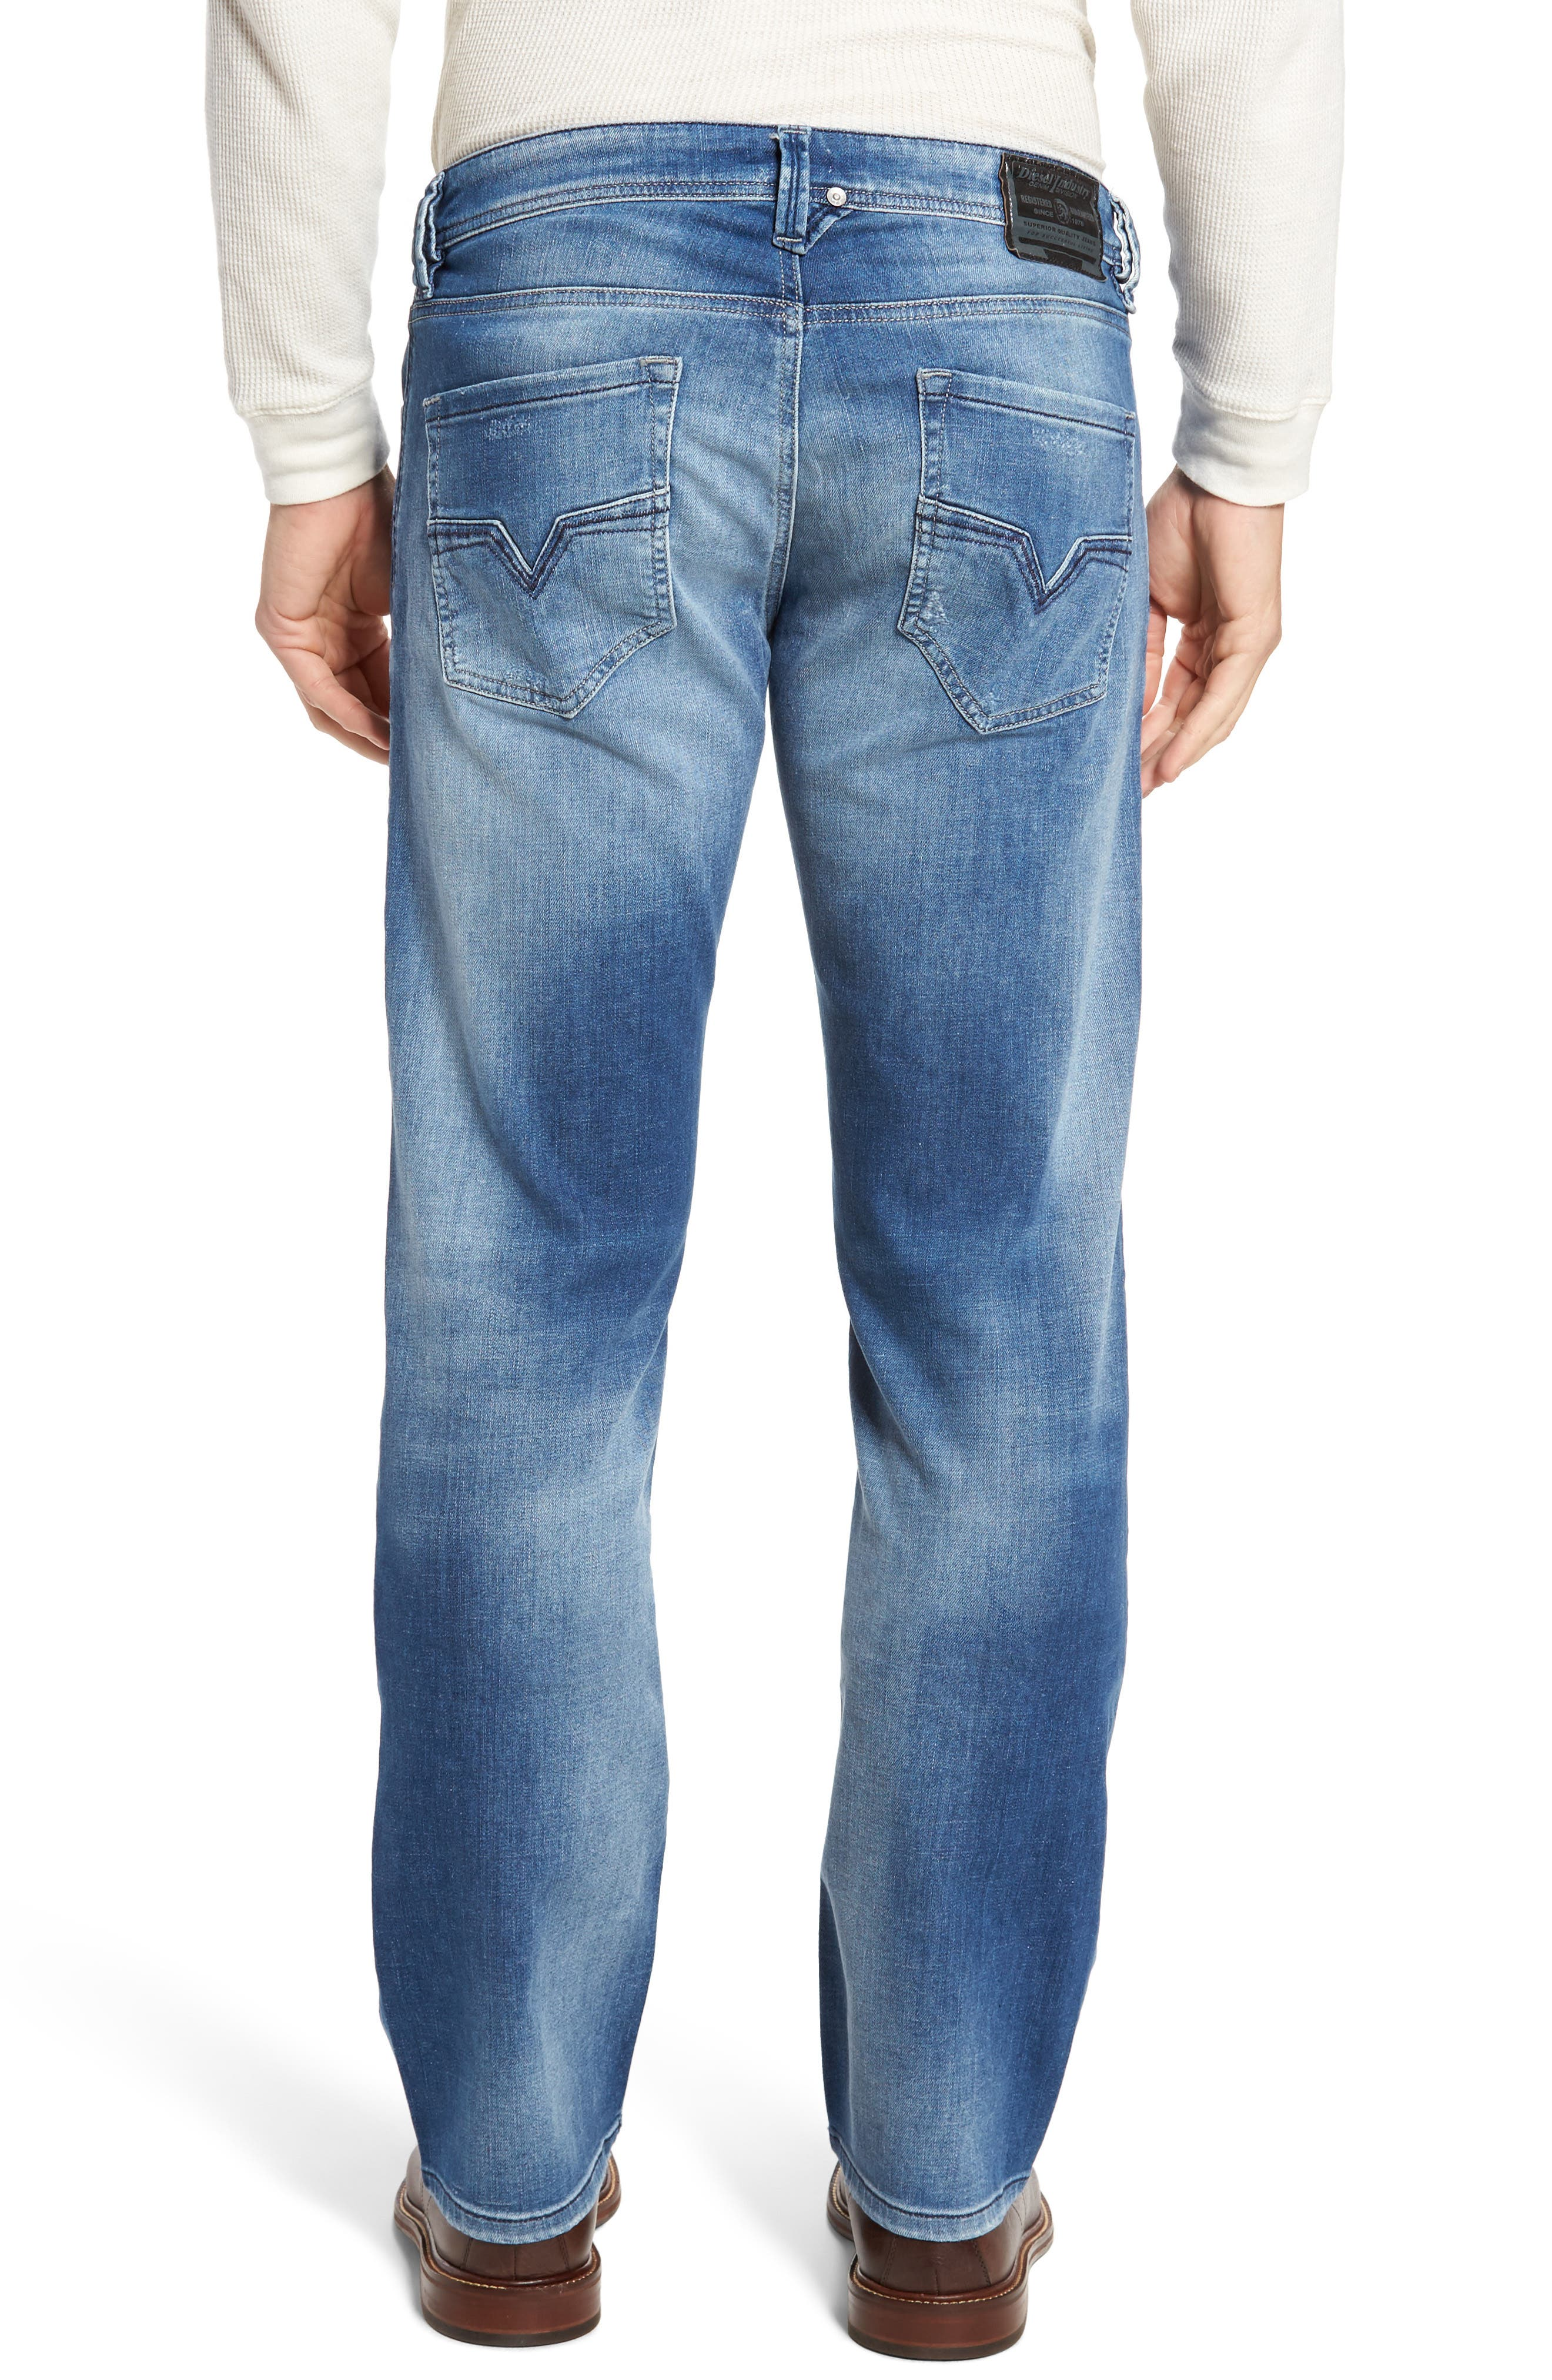 Larkee Relaxed Fit Jeans,                             Alternate thumbnail 2, color,                             084Qg